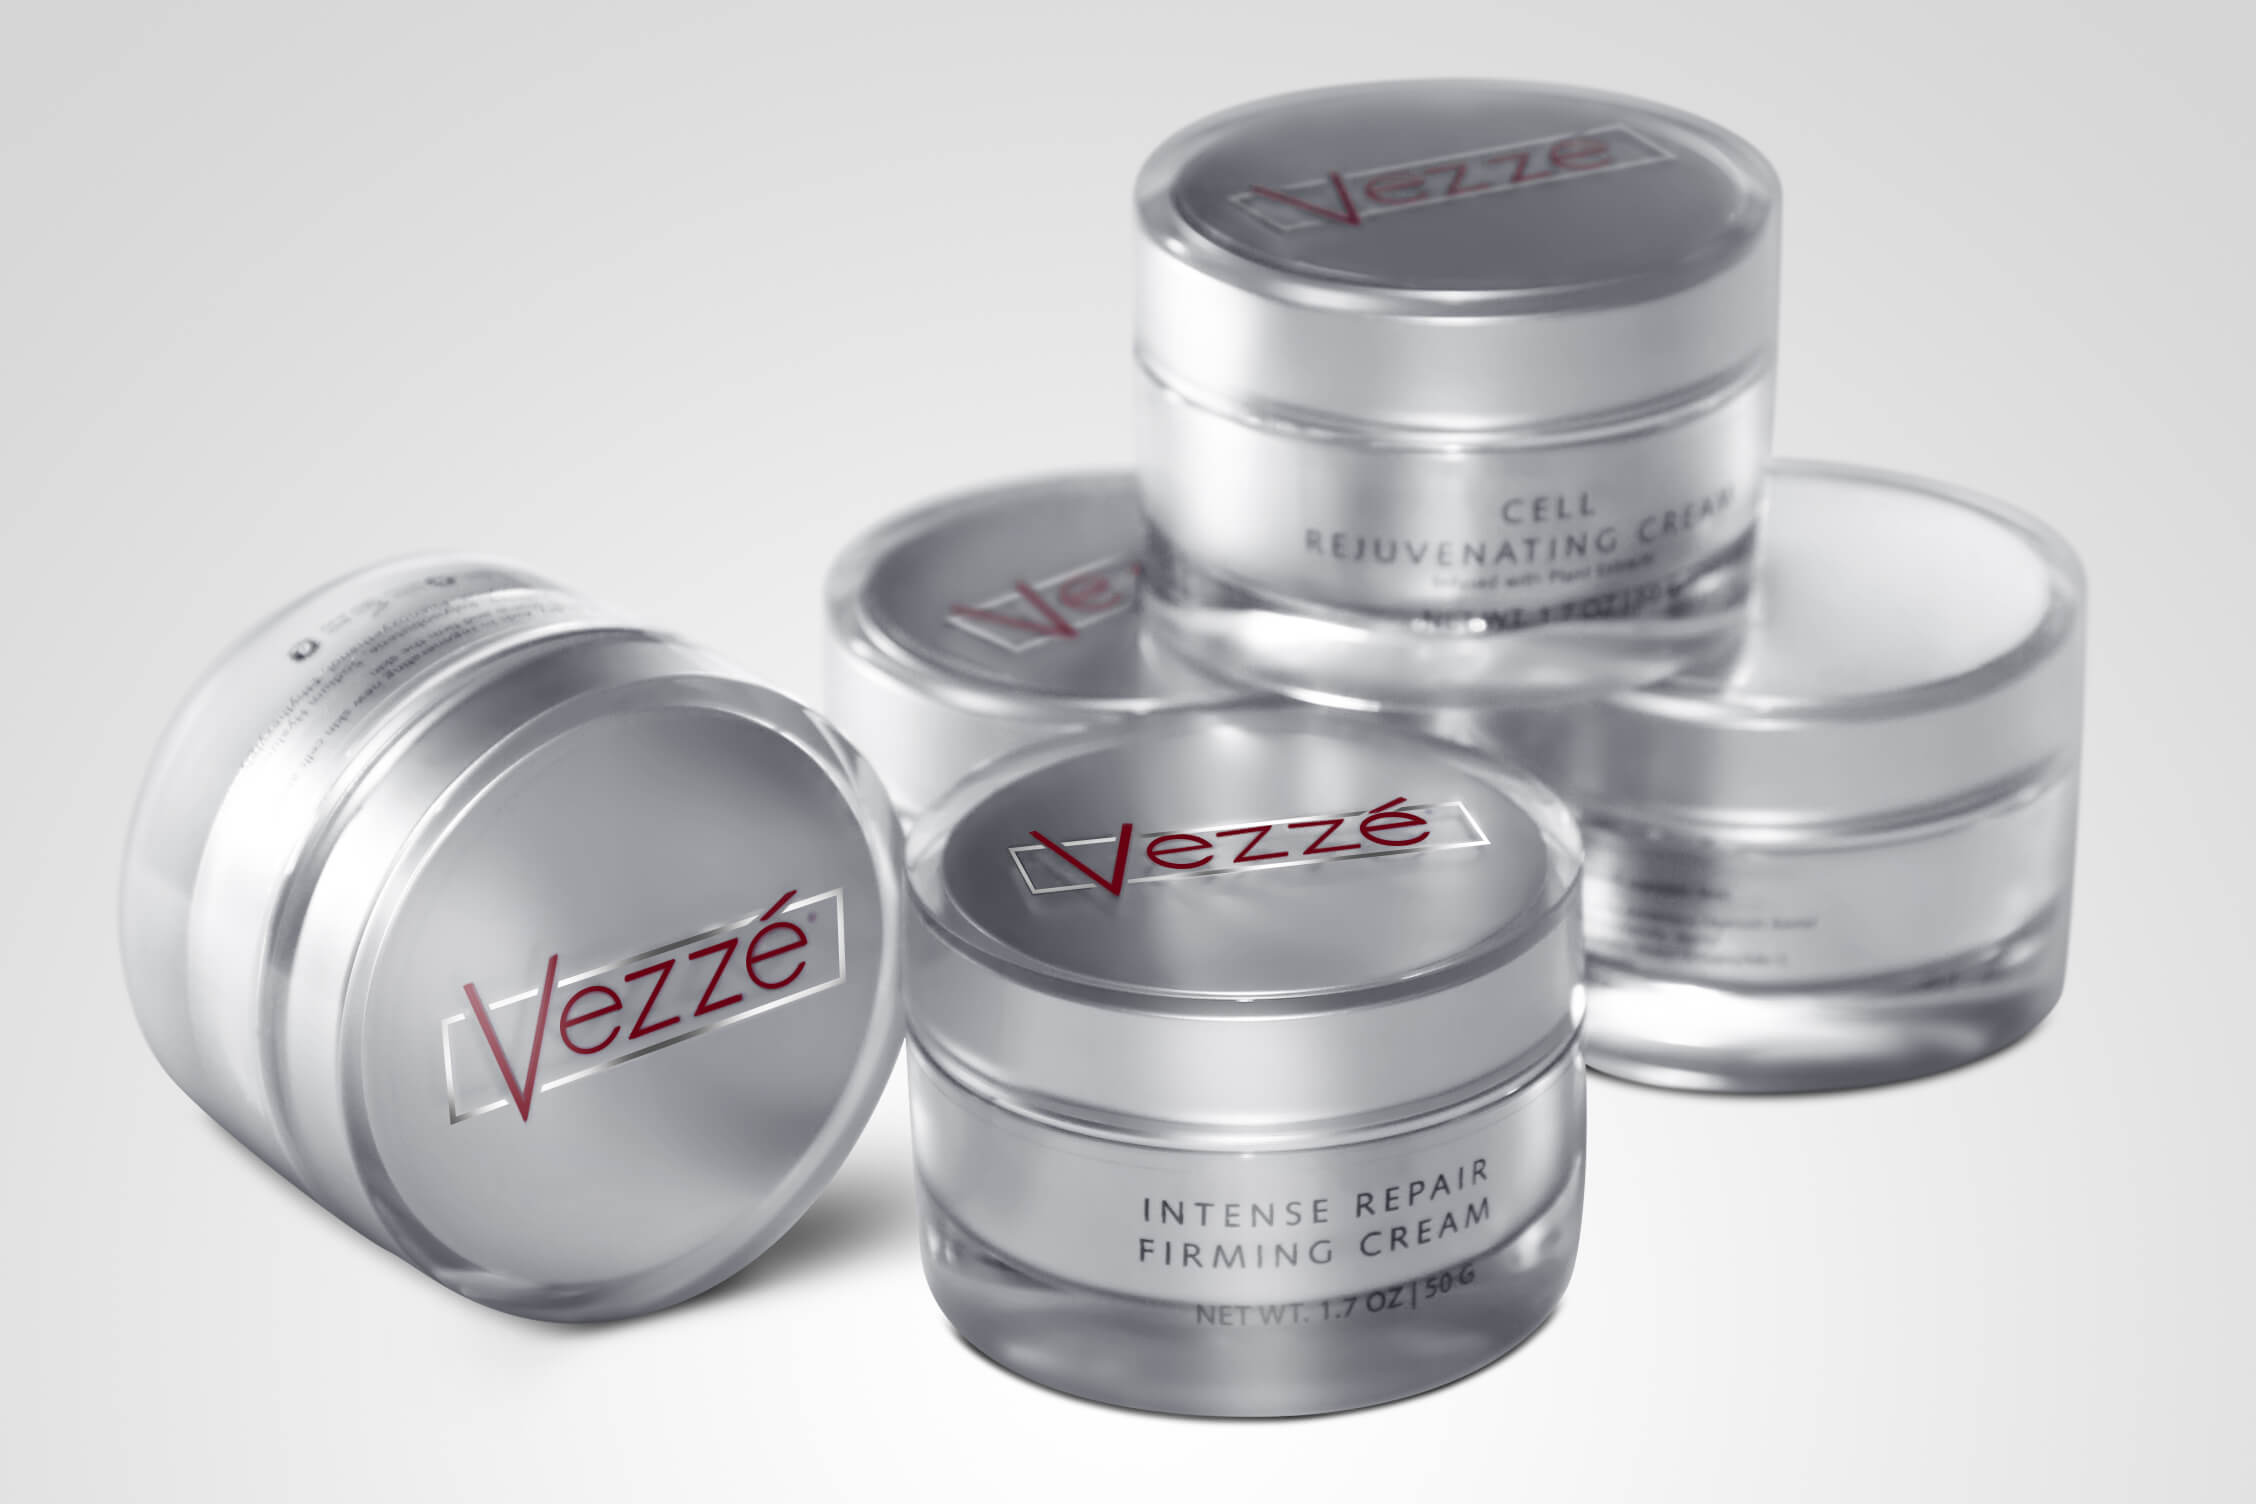 With over thirty years of professional skin care experience, as well as the love of helping her clients and a desire to educate, led the founder of Vezze to create this innovative skin care line.